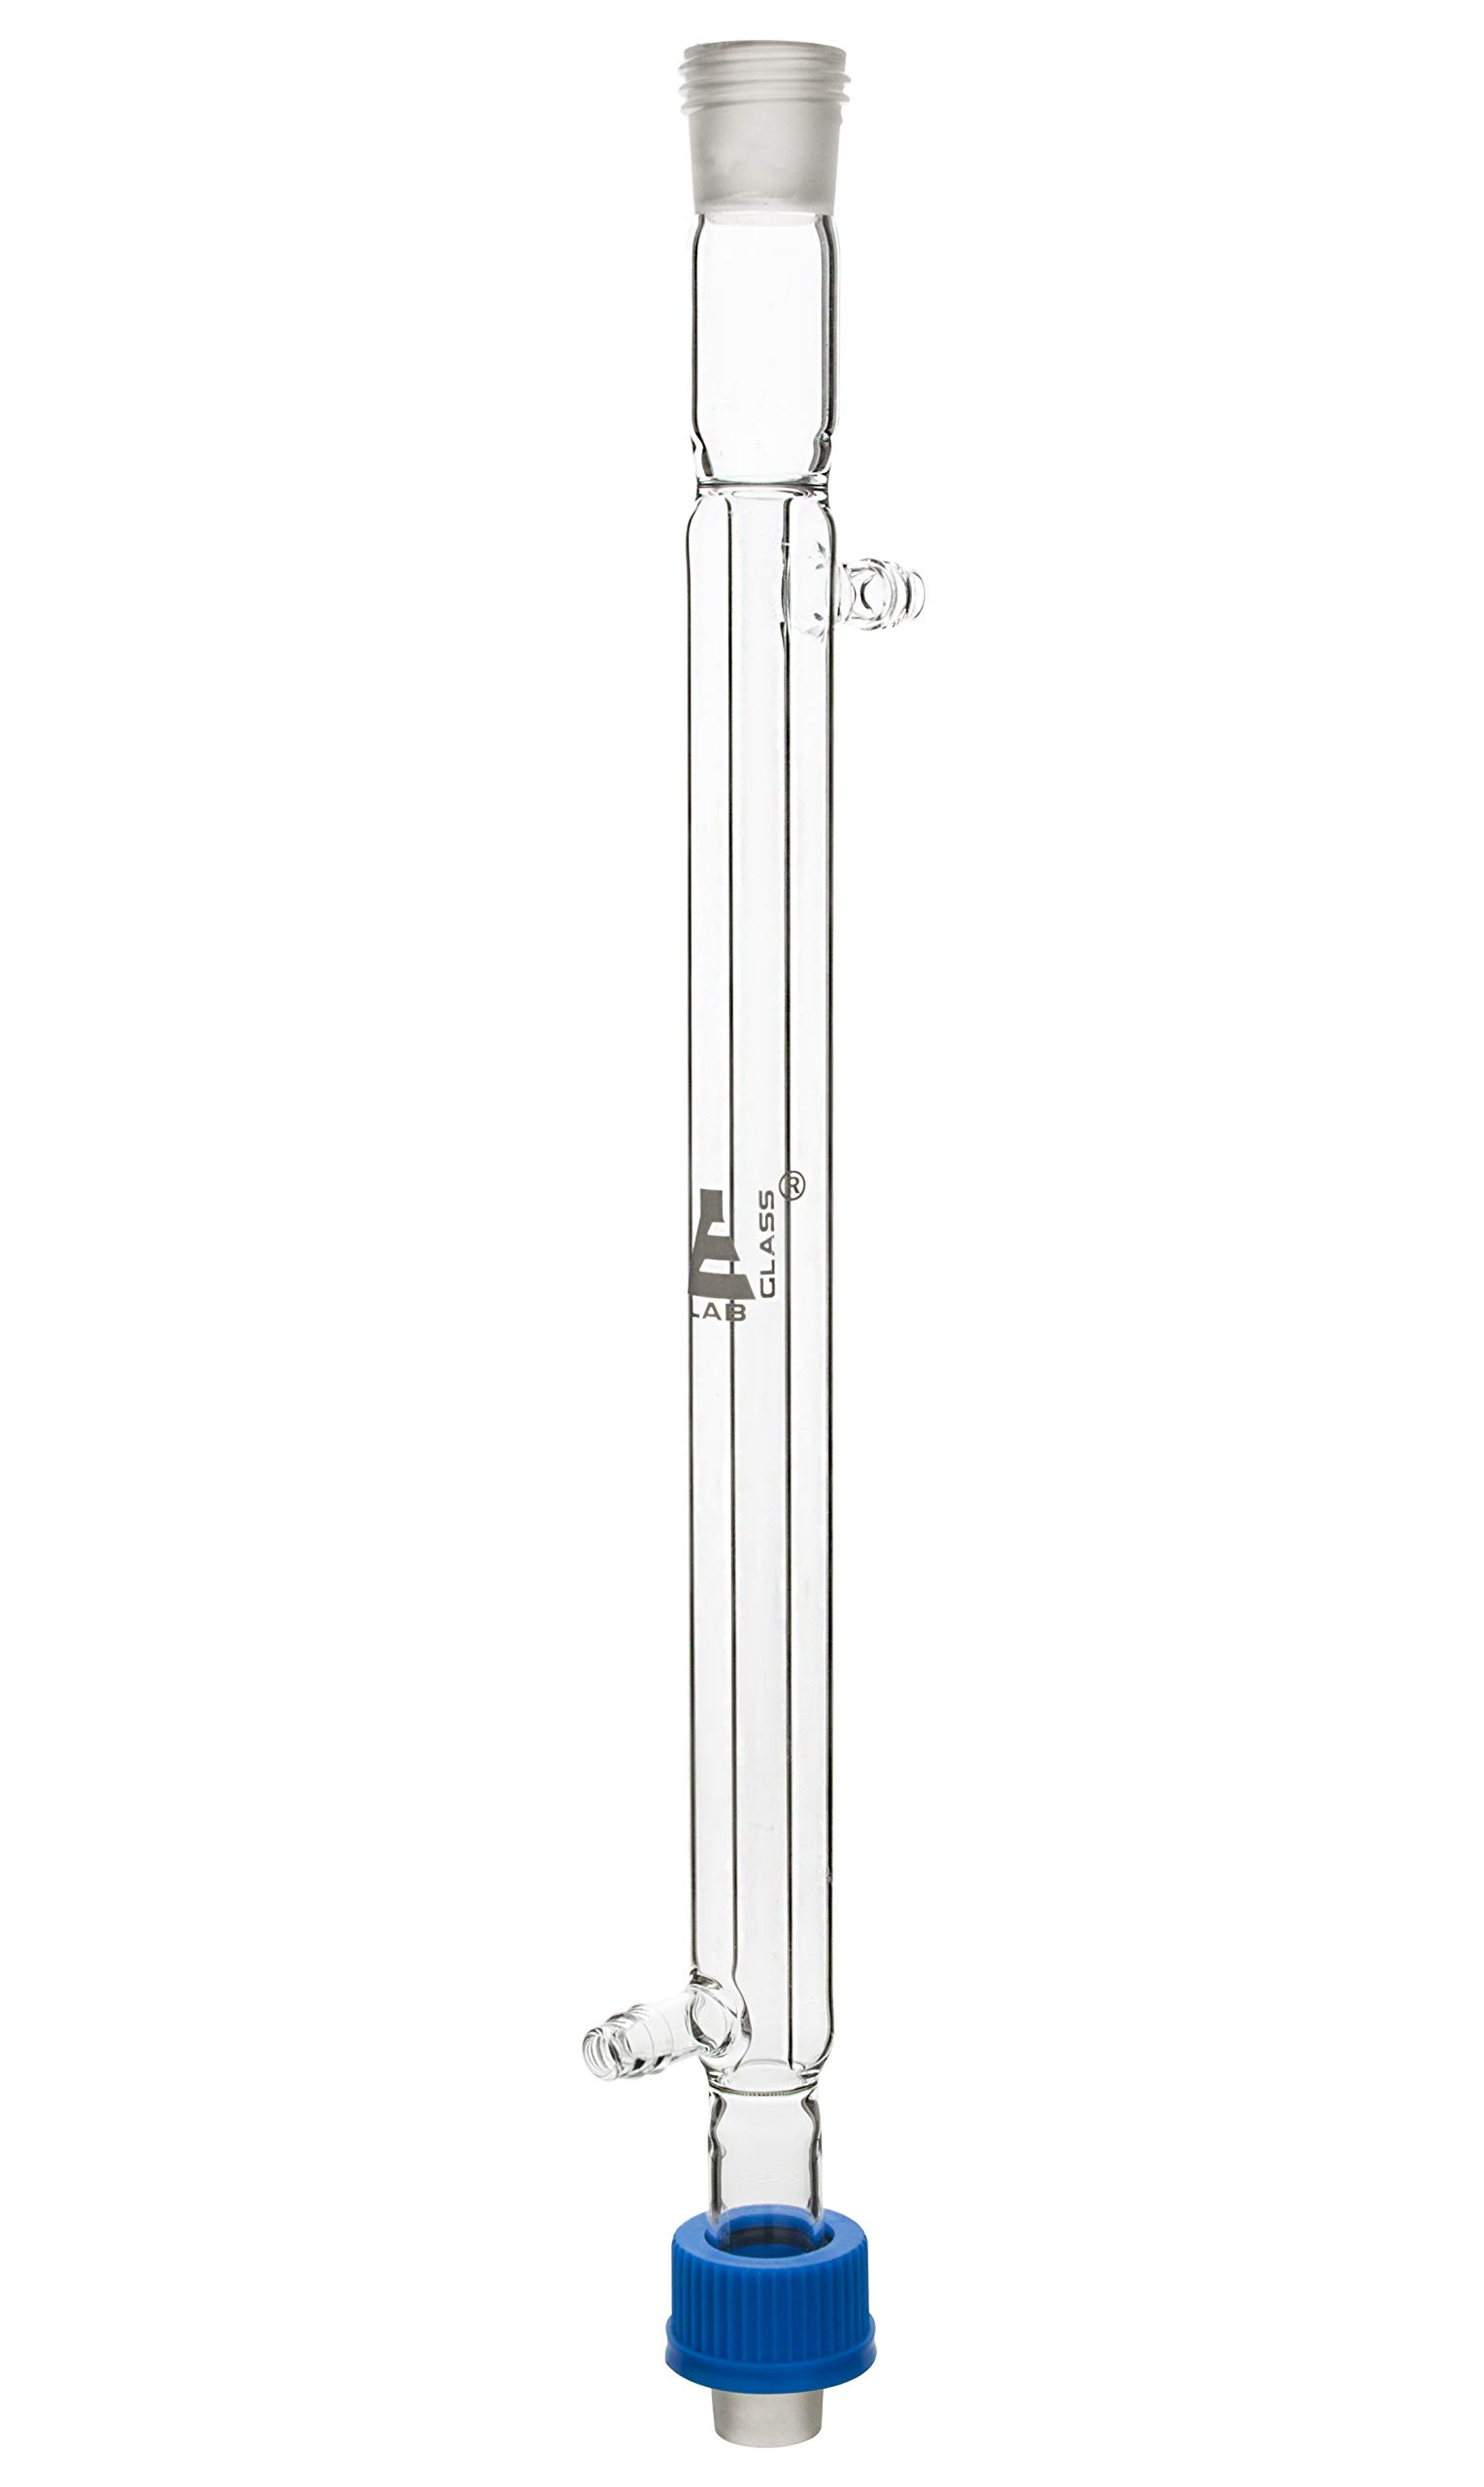 Liebig Condenser, 300mm, Socket/Cone Size 19/26, Interchangeable Screw Thread Joint, Borosilicate Glass - Eisco Labs